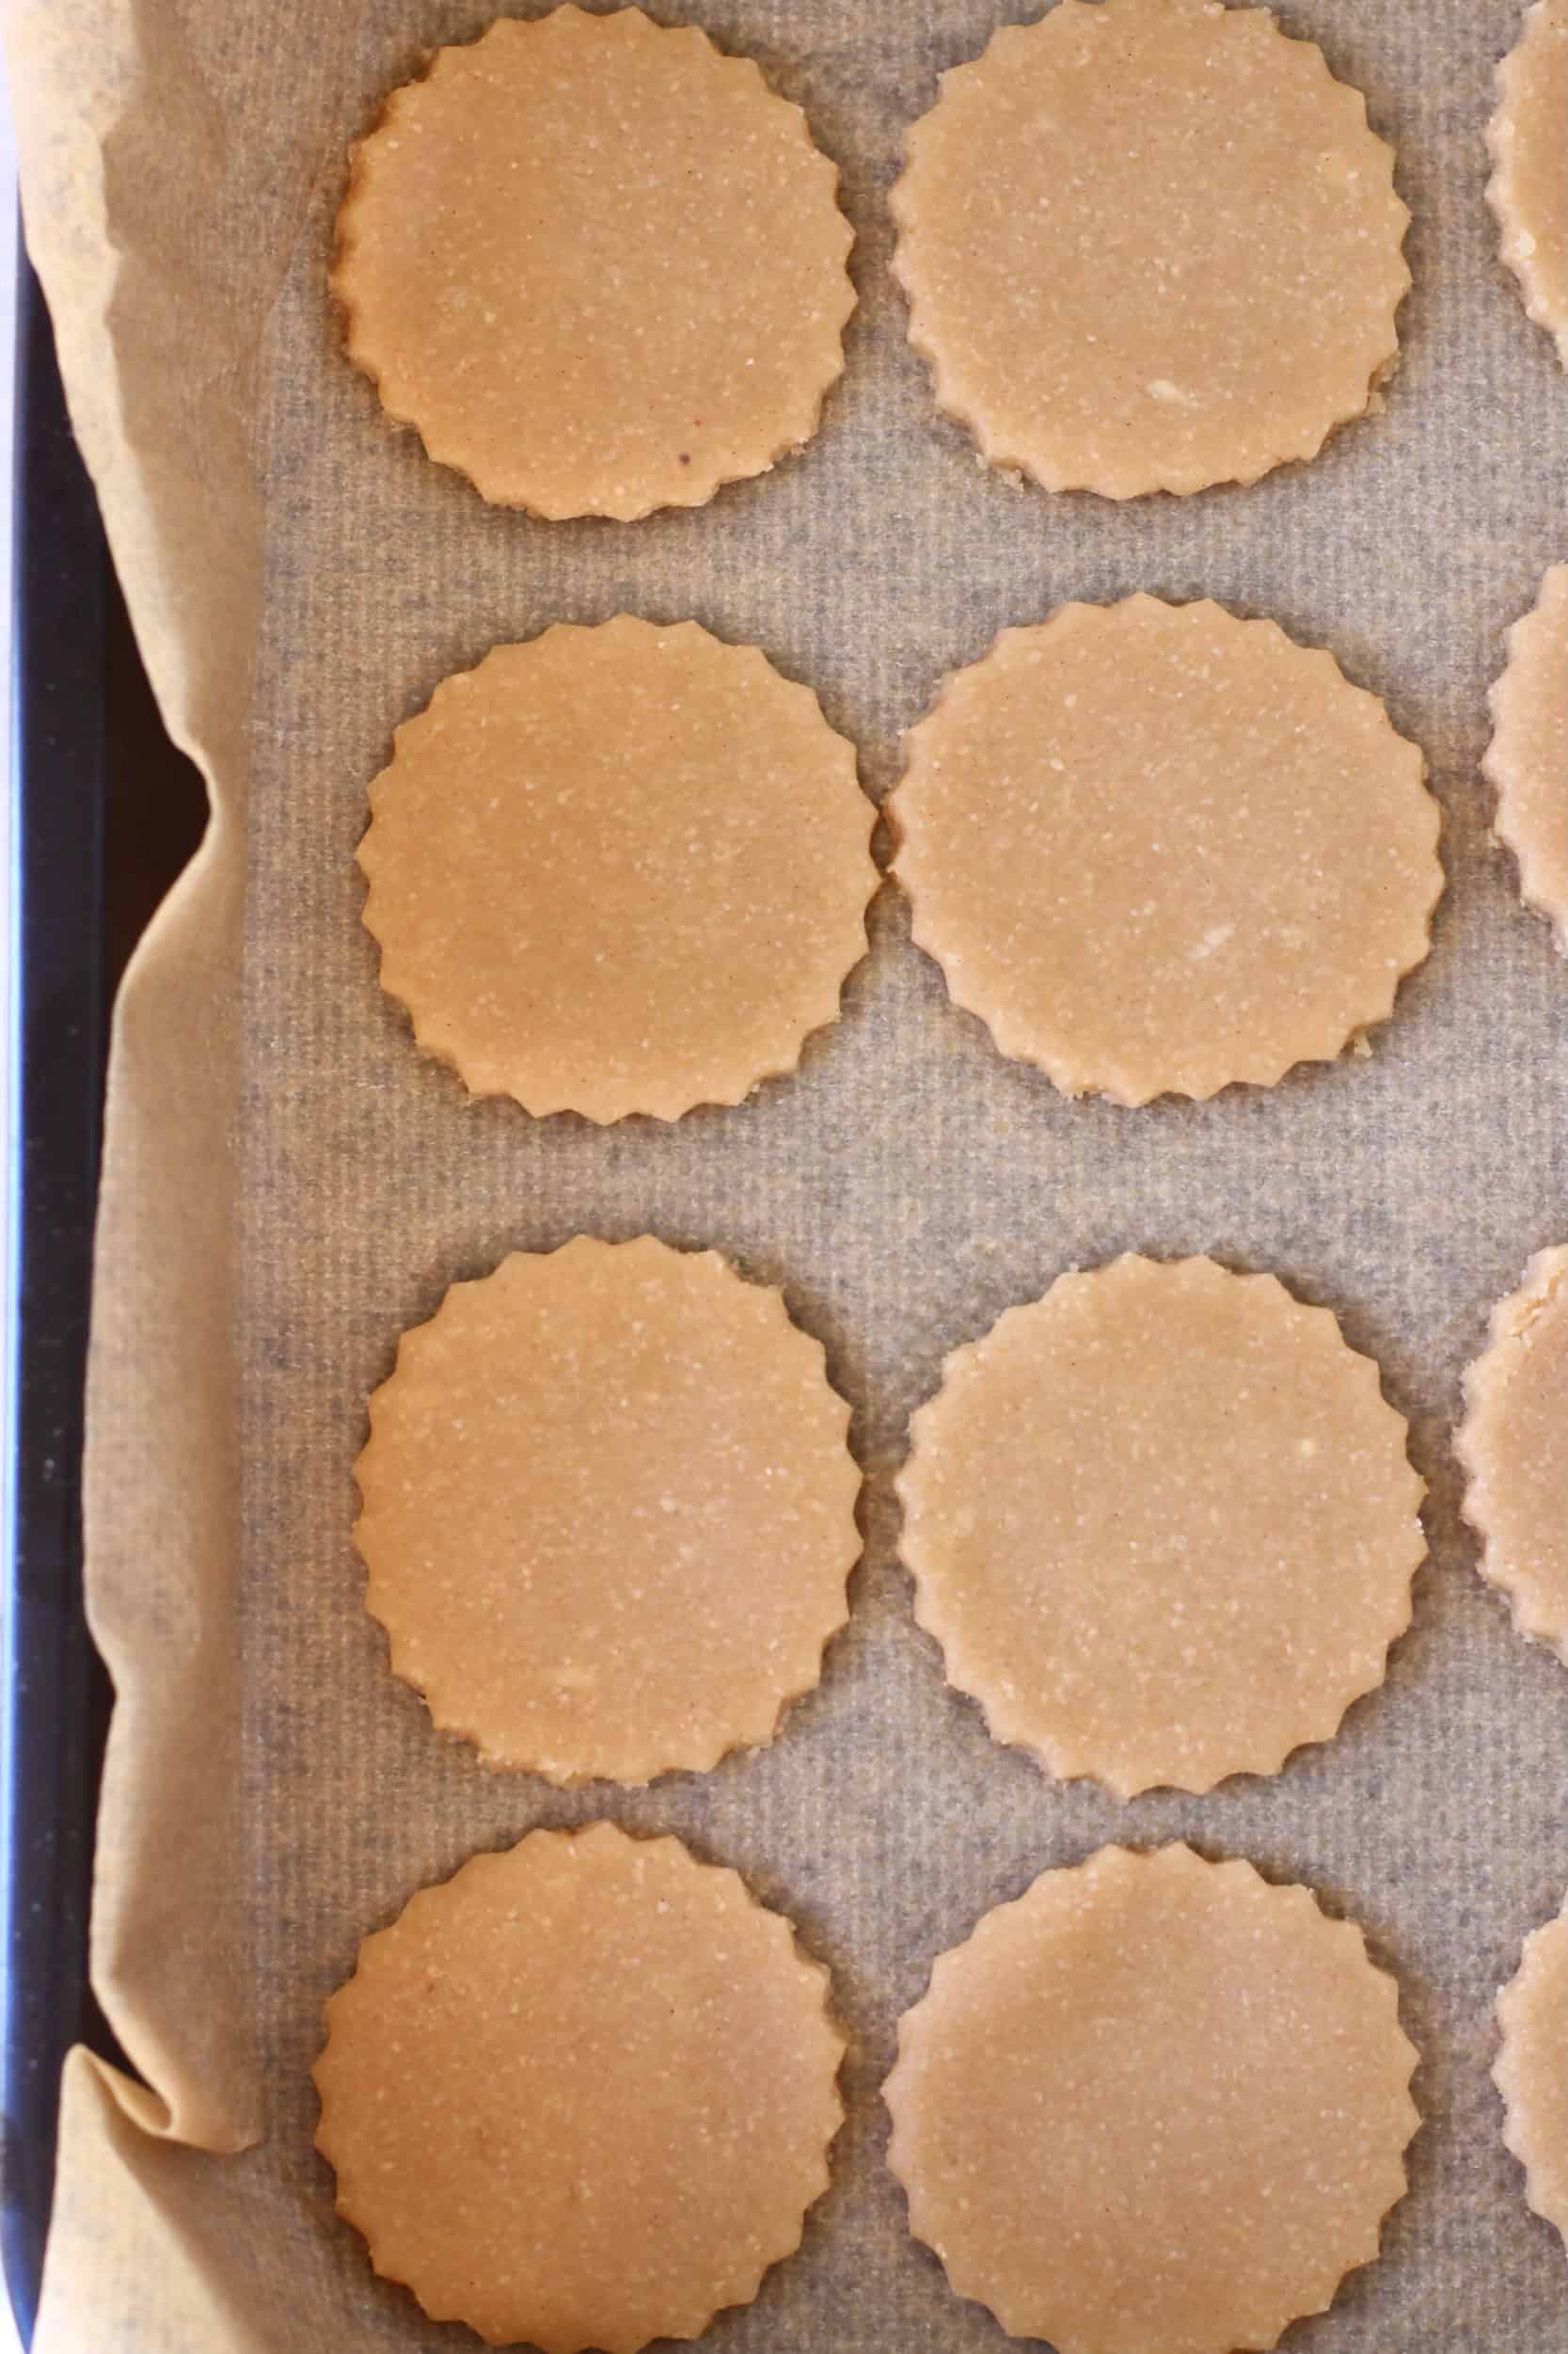 Eight raw gluten-free vegan linzer cookie circles on a baking tray lined with baking paper